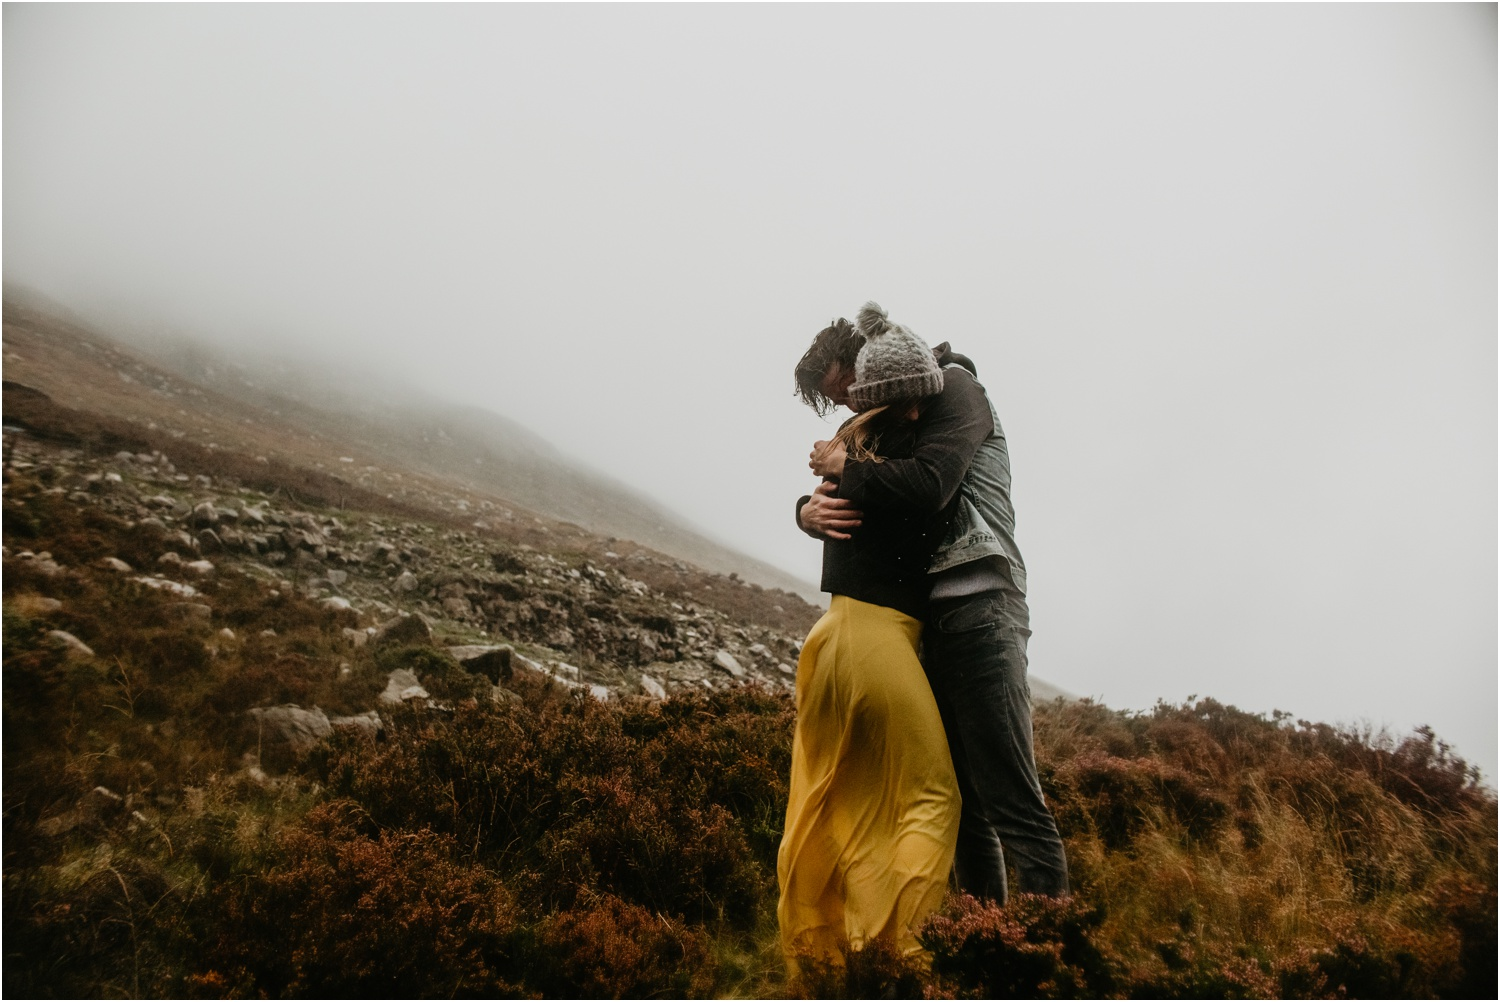 Courtney Jess Photography,Elopement Photographer,Ireland Elopement Photographer,Kimberley BC Photography,Kimberley Couples Photography,Northern Ireland Couples Photography,Silent valley reservoir,